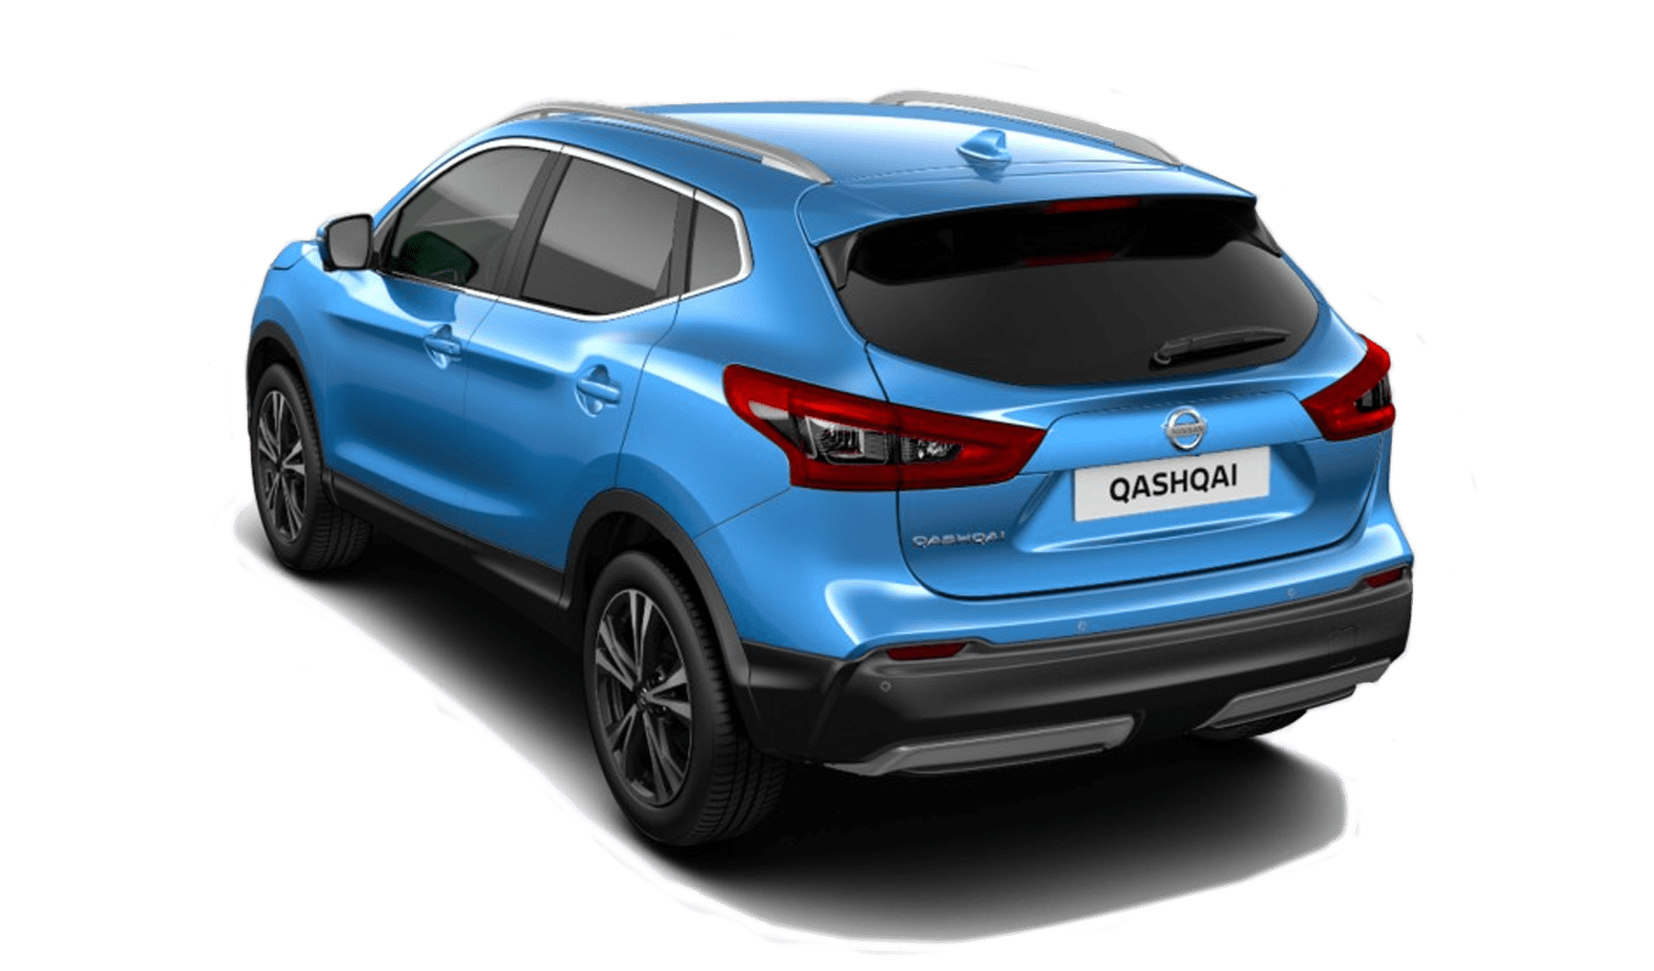 Nissan Qashqai Private Lease Private Lease De Nissan Qashqai Vanaf 369 Justlease Be Justlease